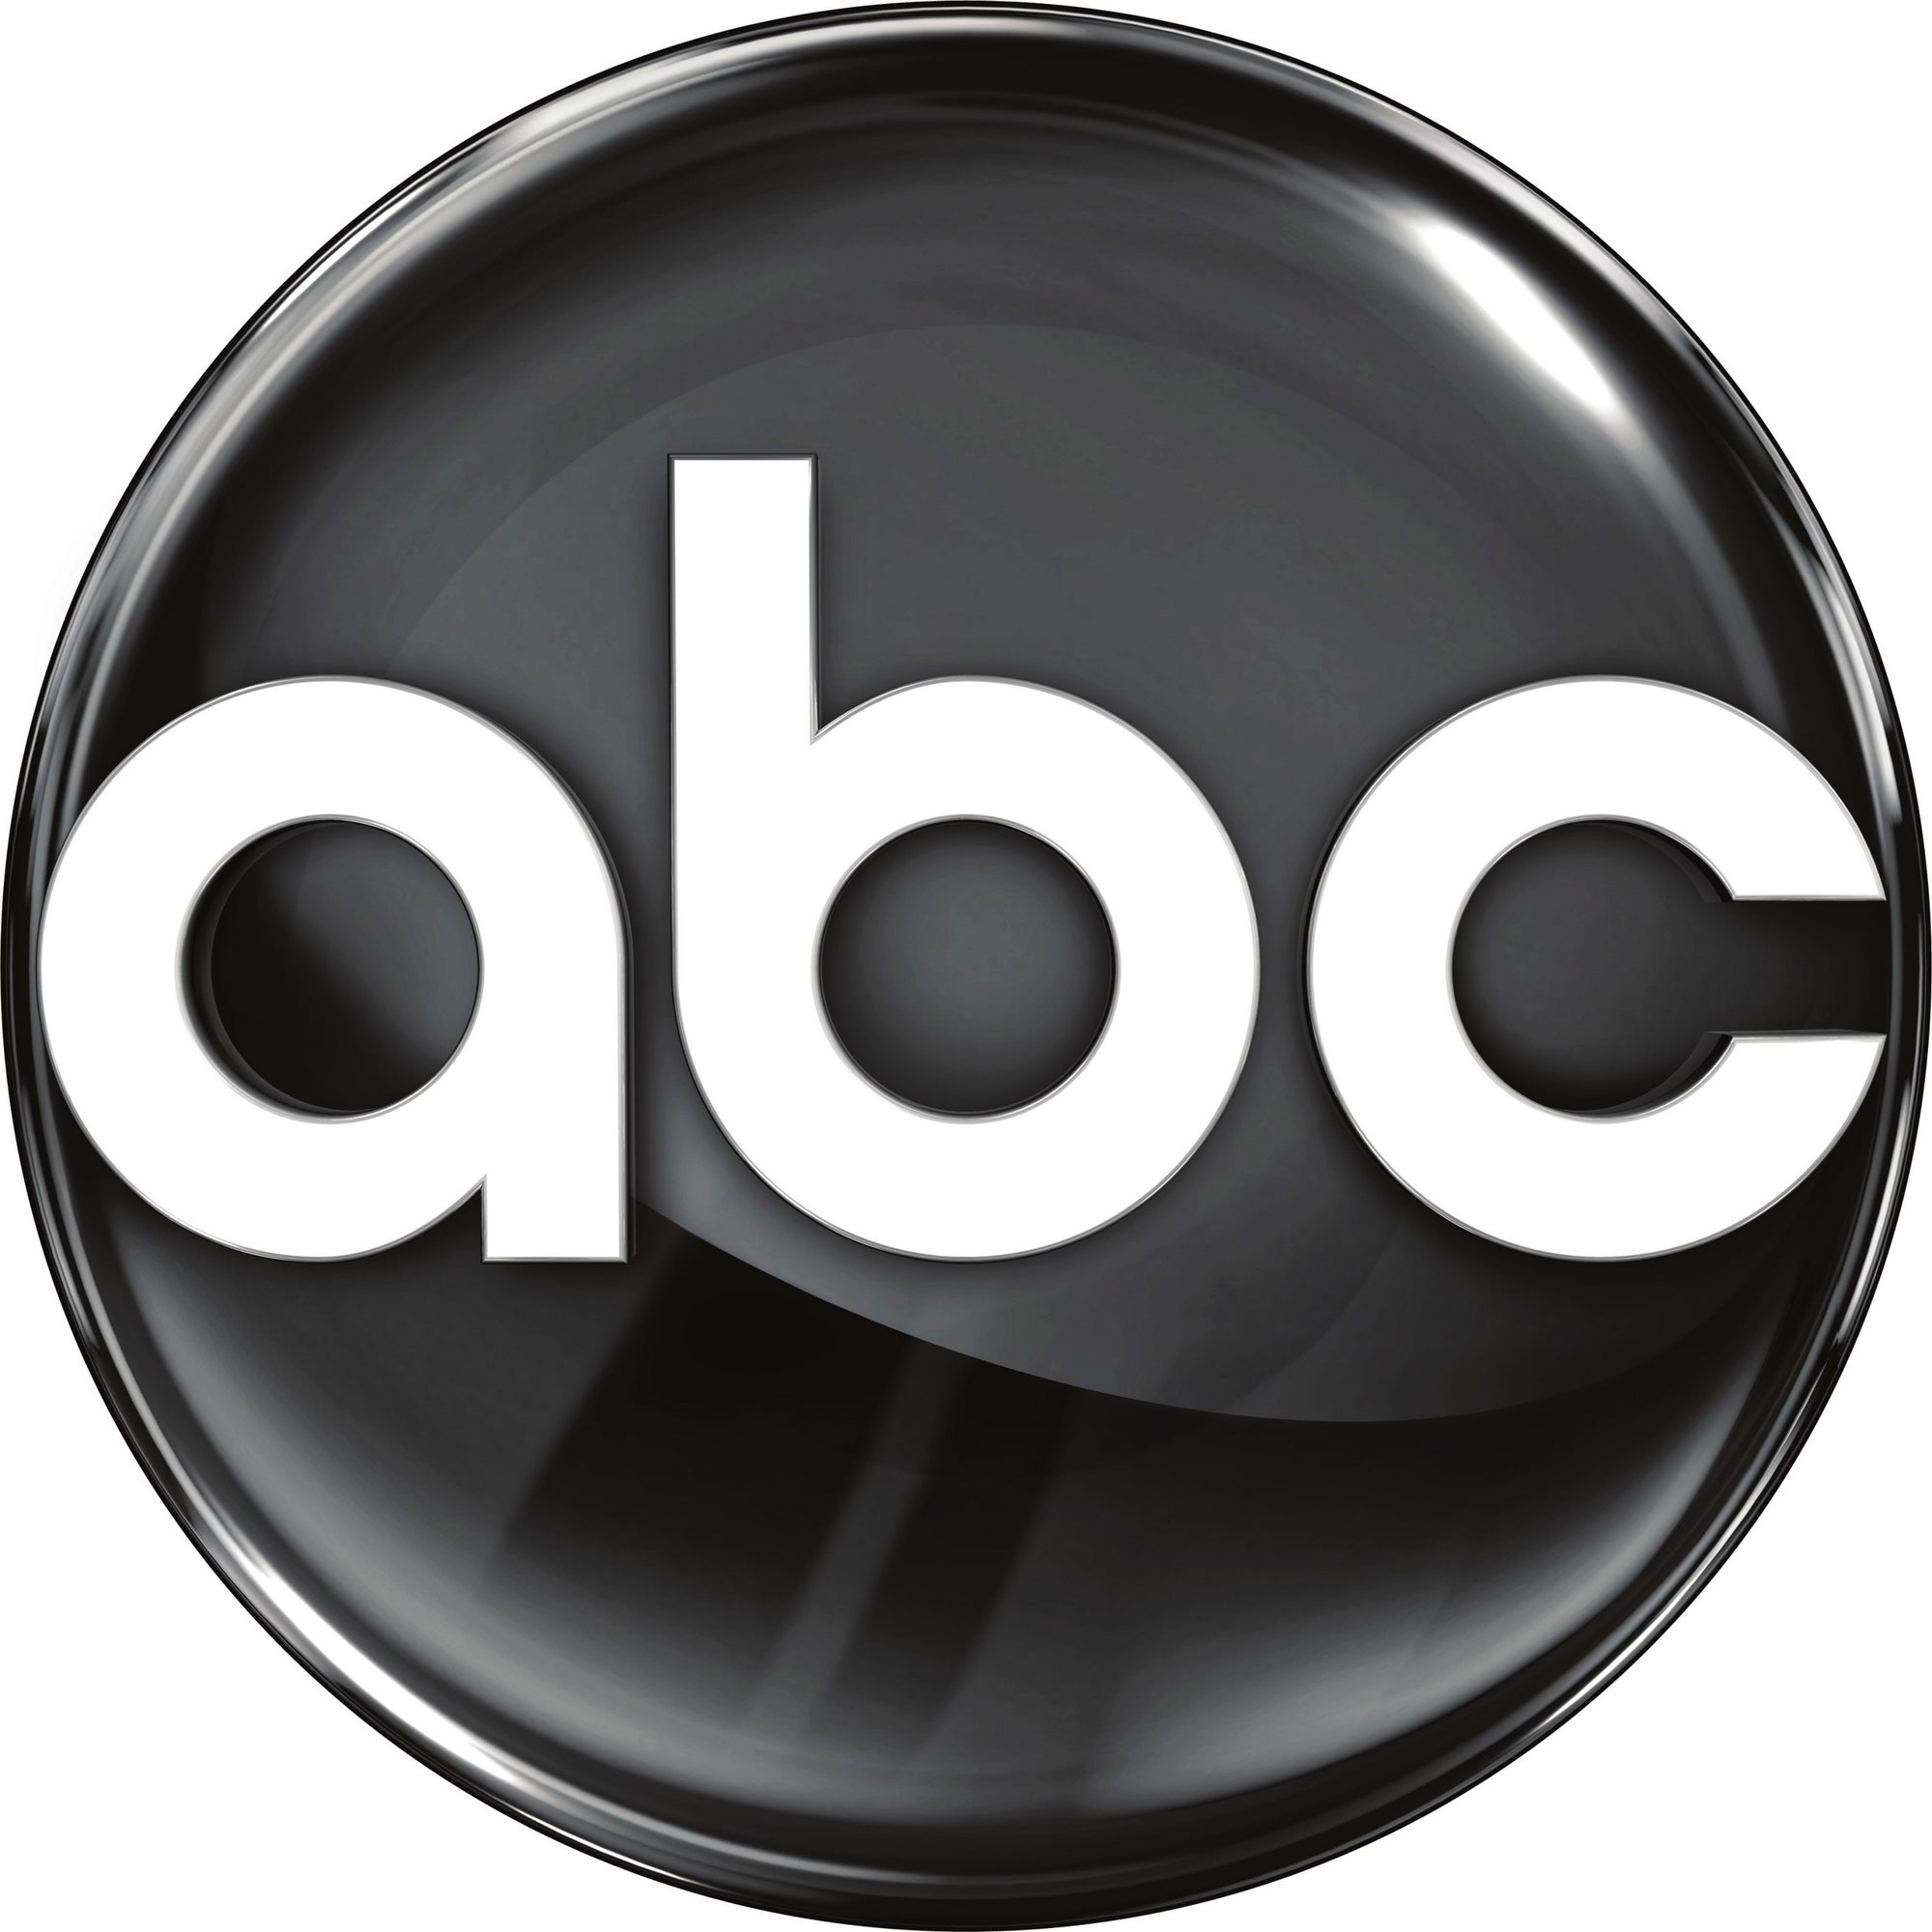 ABC logo in the press CPC Childrenswear